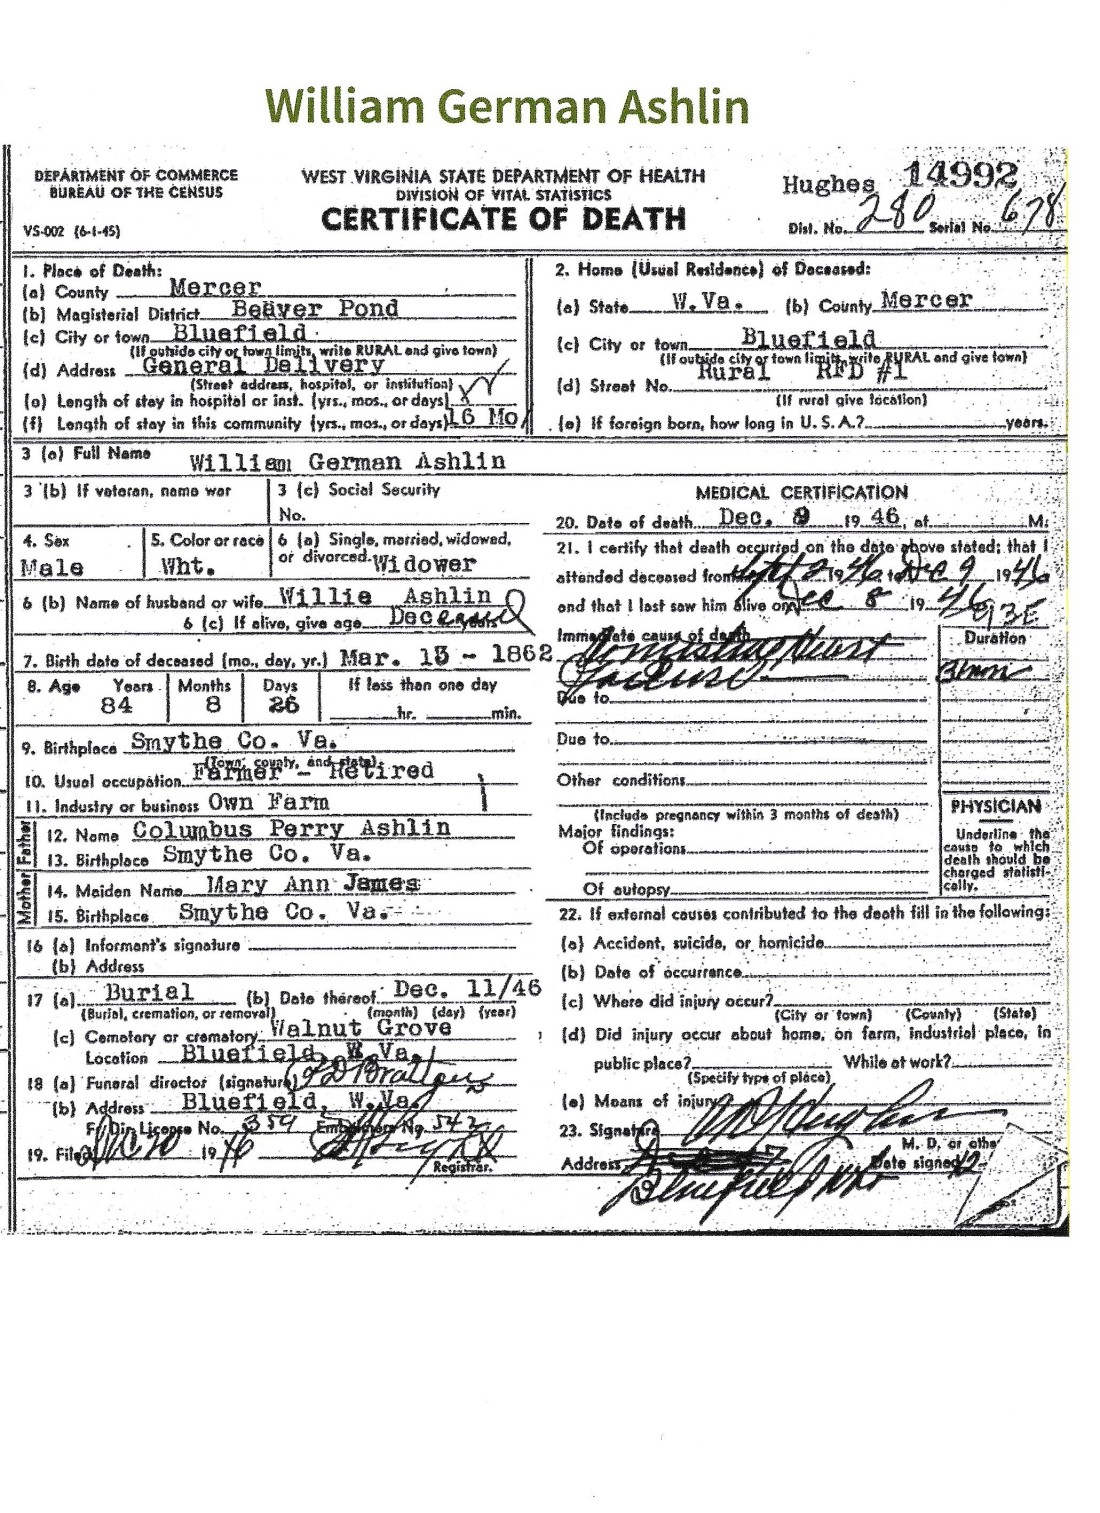 William German Ashlin death cert 001.jpg